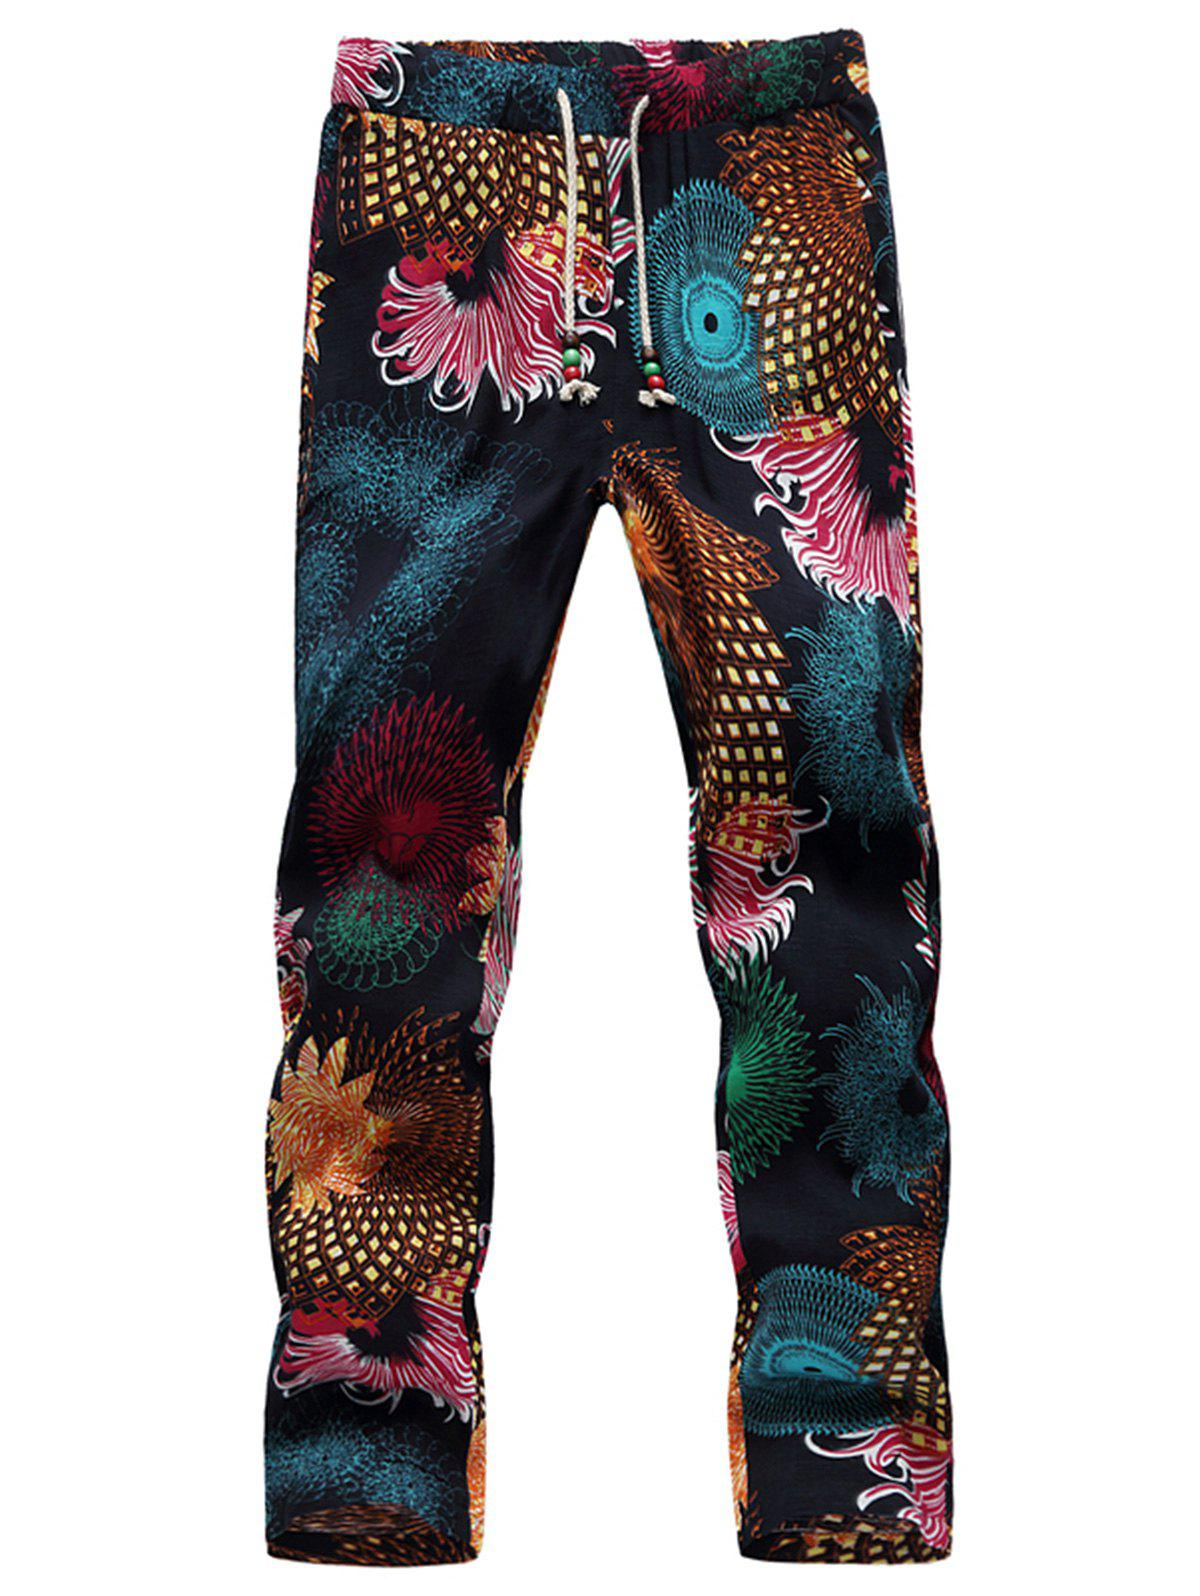 Drawstring Cotton Linen Printed Ninth Pants arte lamp потолочная люстра arte lamp alessandra a5004pl 3wg